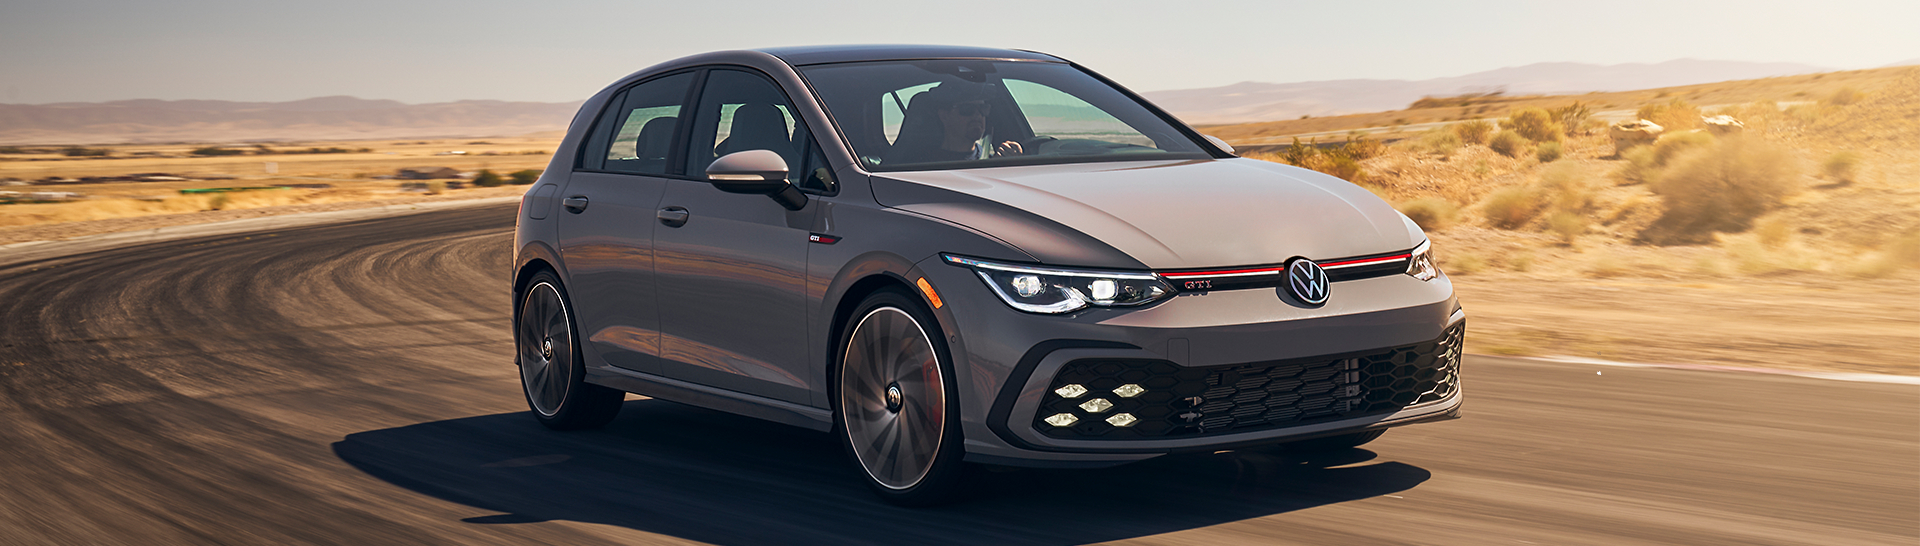 2022 Volkswagen Golf GTI in the color Moonstone Gray driving on a road.